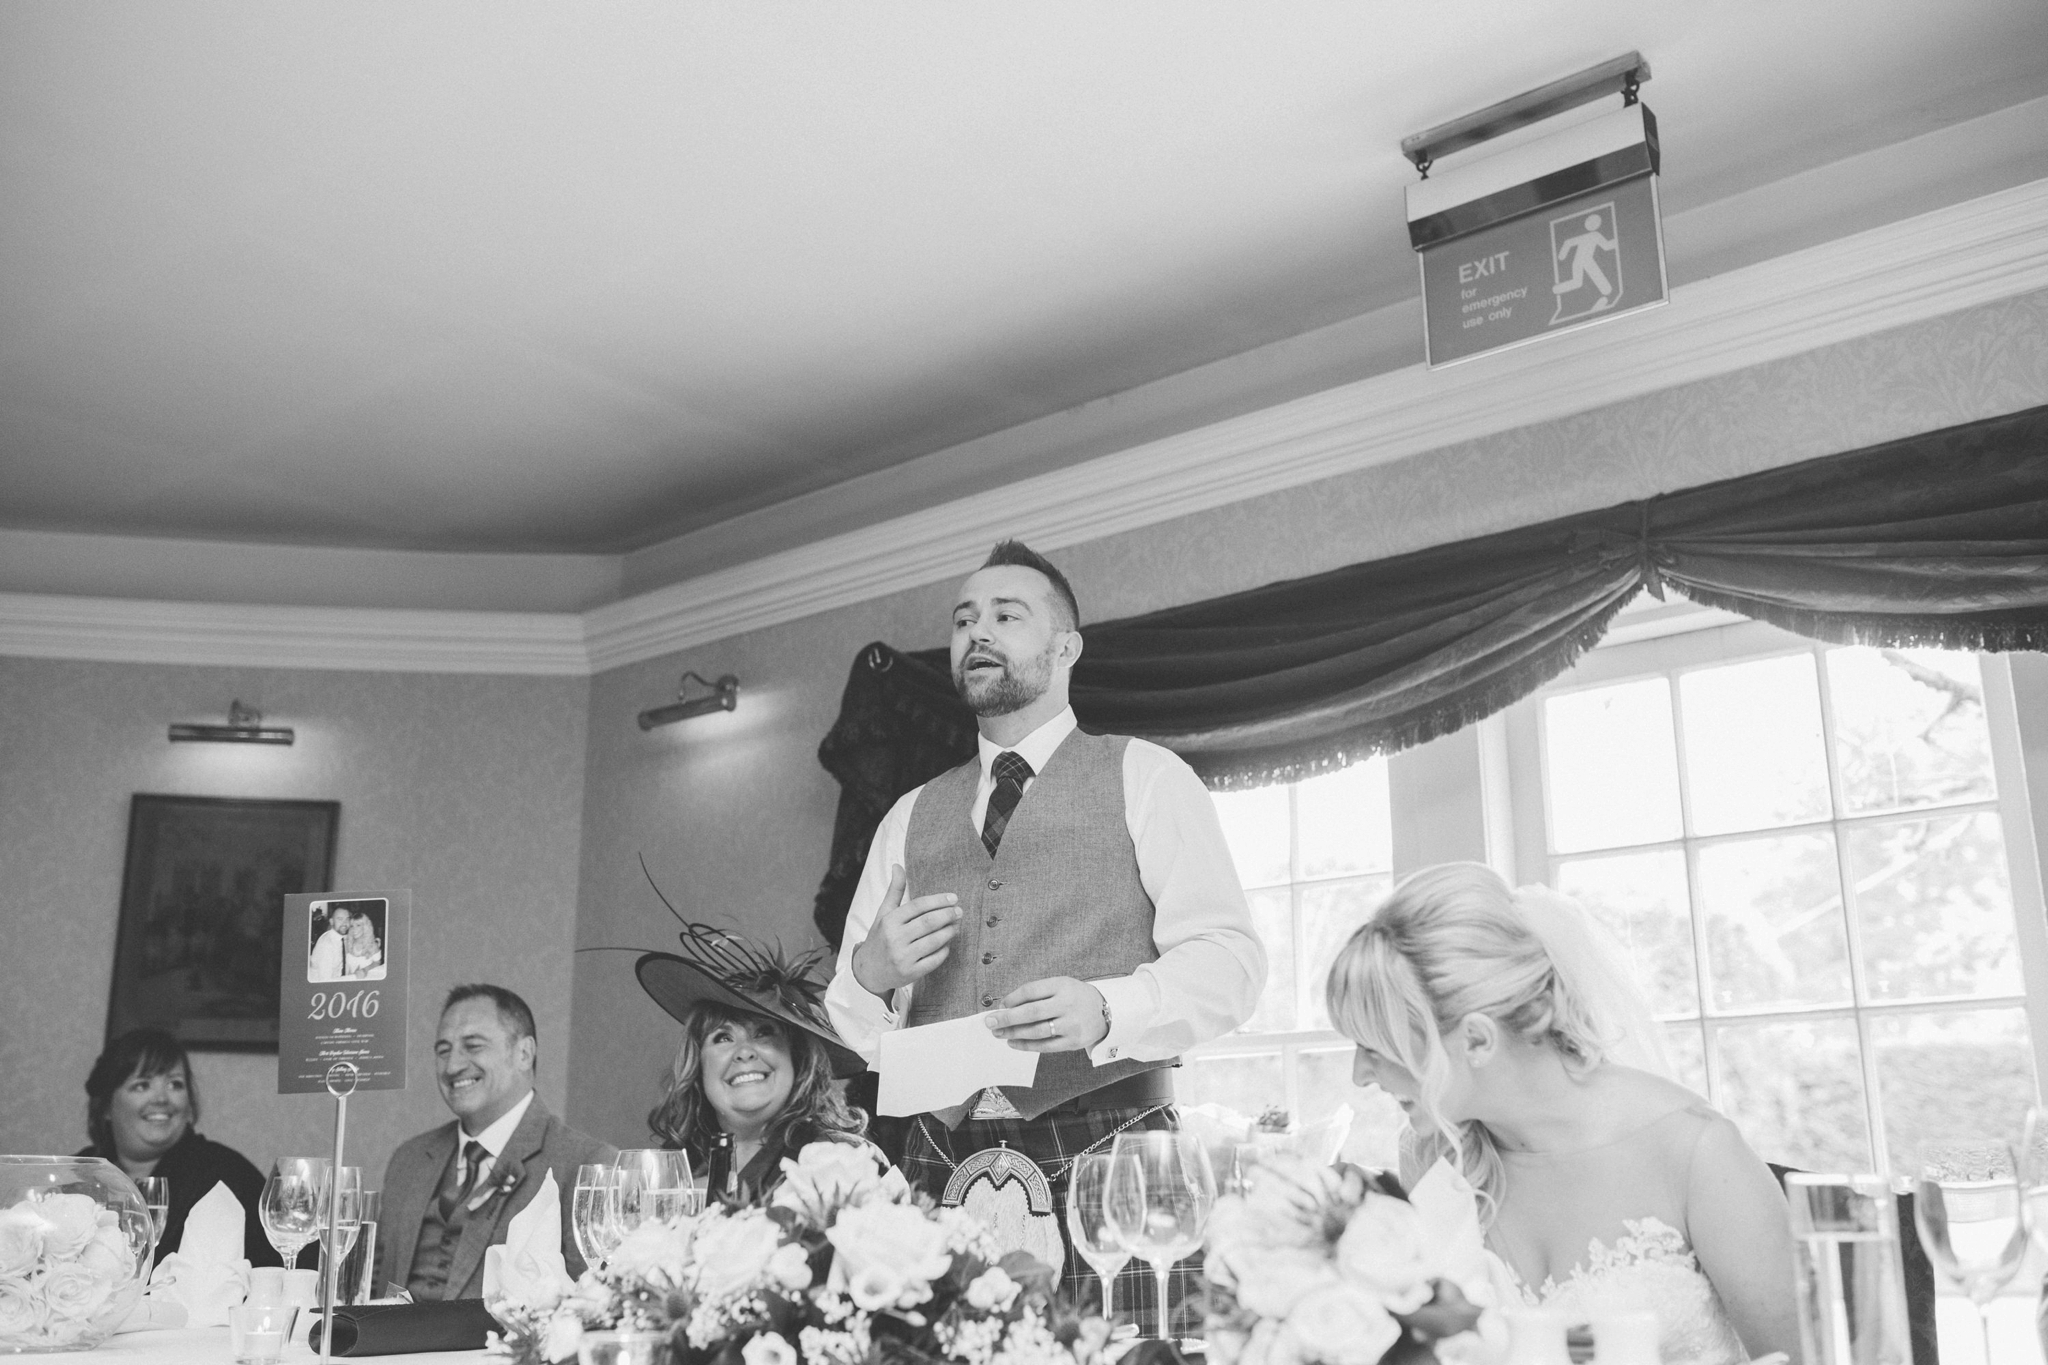 Suzanne_li_photography_Roman_camp_wedding_0030.jpg